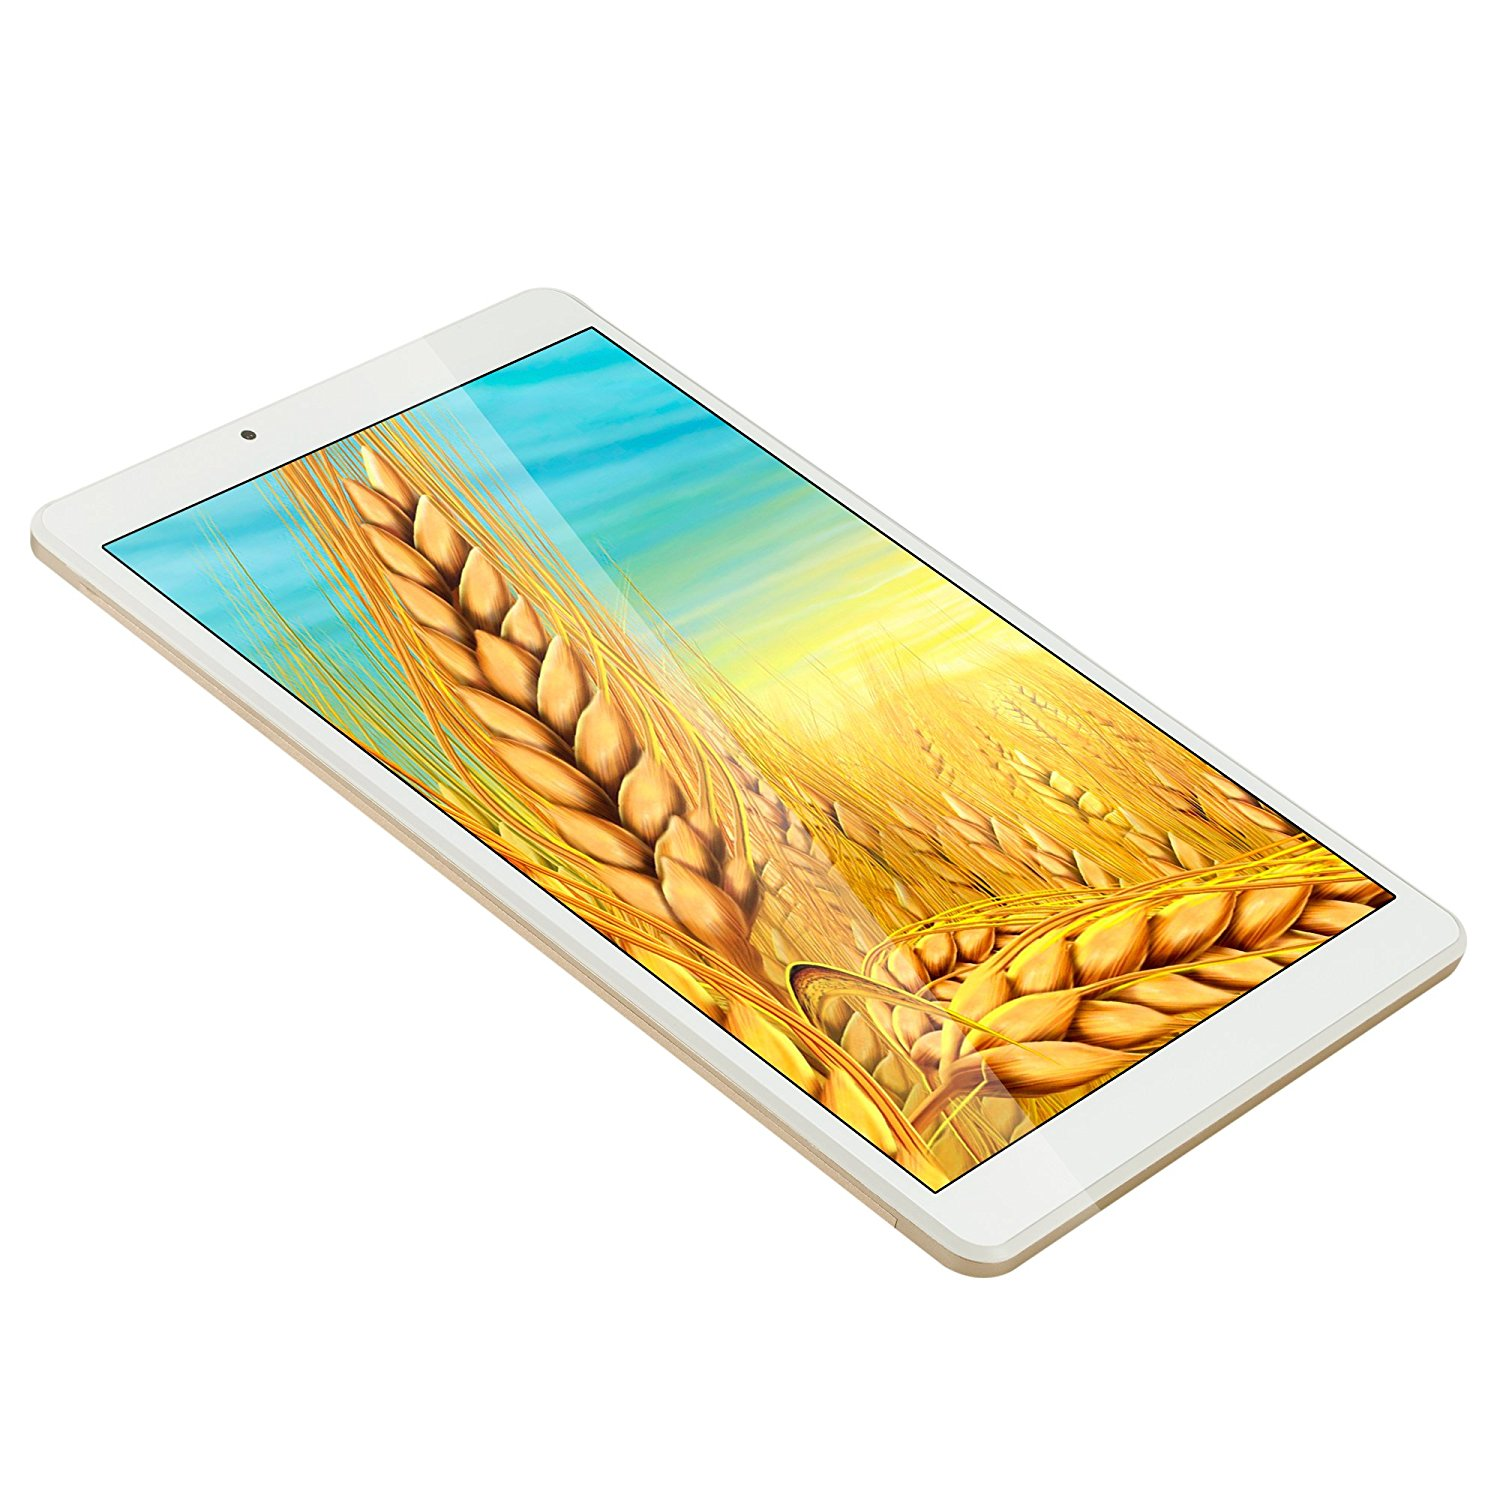 AOSON R103 10 1 Inch Android Tablet - Best Reviews Tablet